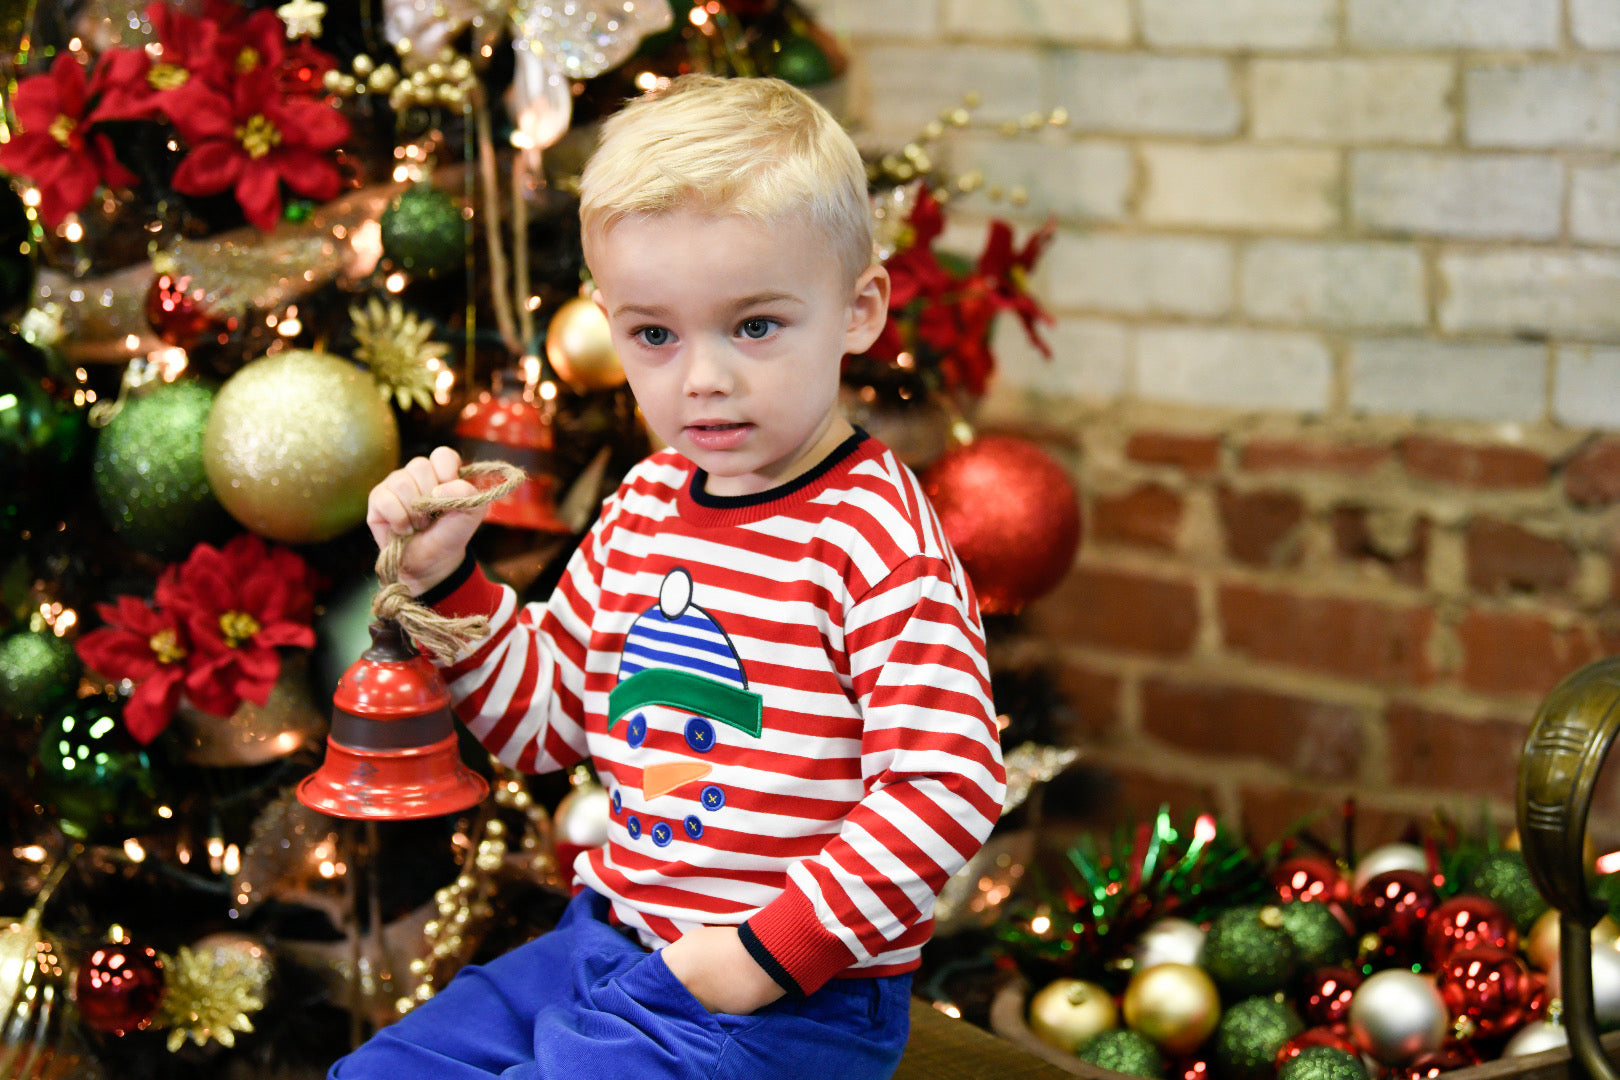 boy holding ornament wearing red and white stripe shirt with snowman